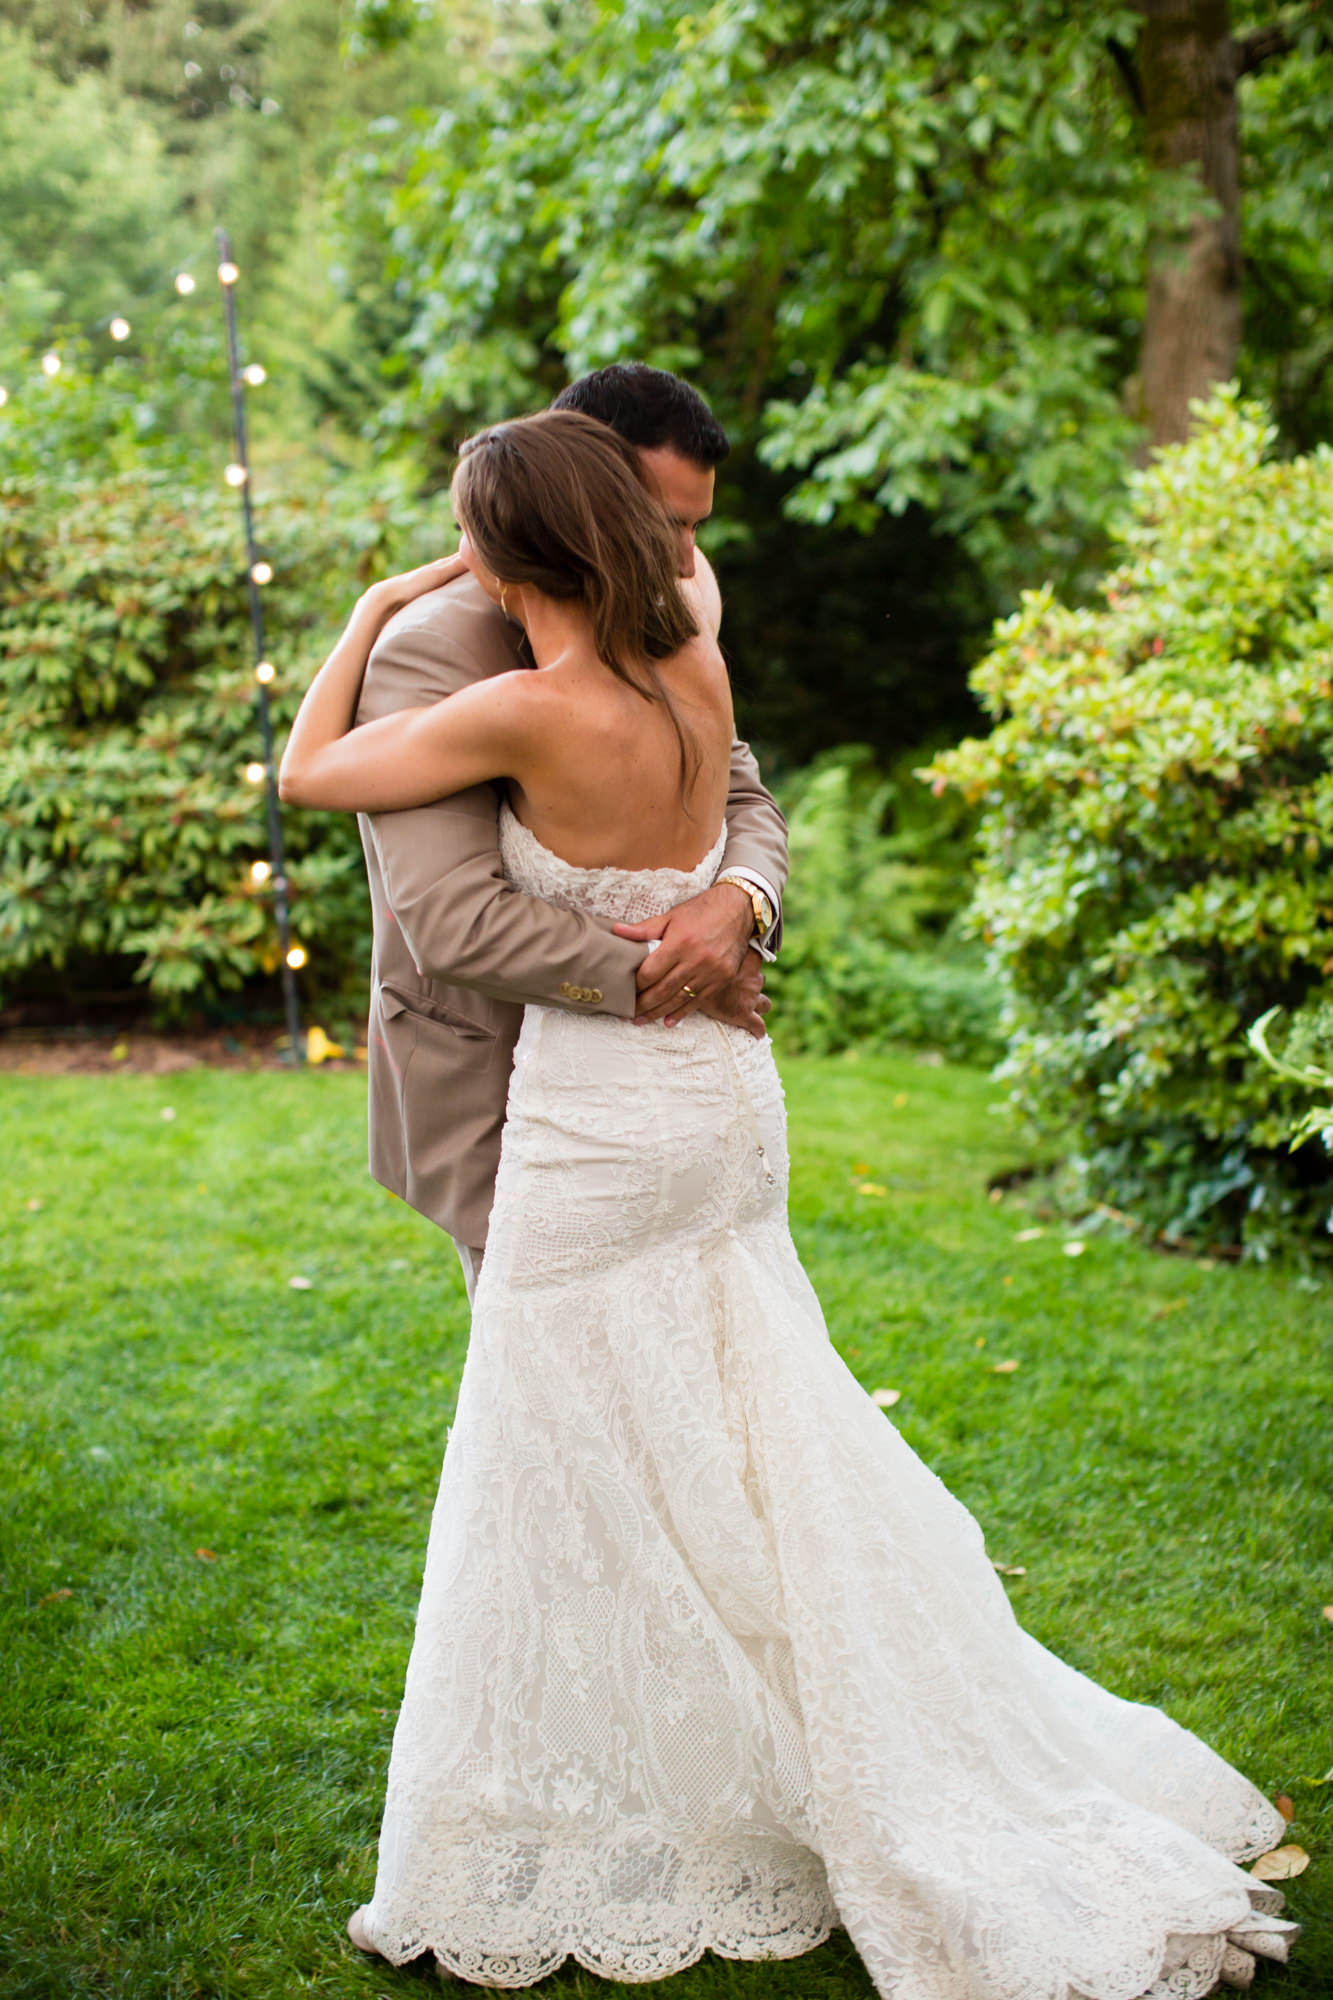 Bridalbliss.com | Seattle Wedding | Washington Event Planning and Design | Le Vie Photography